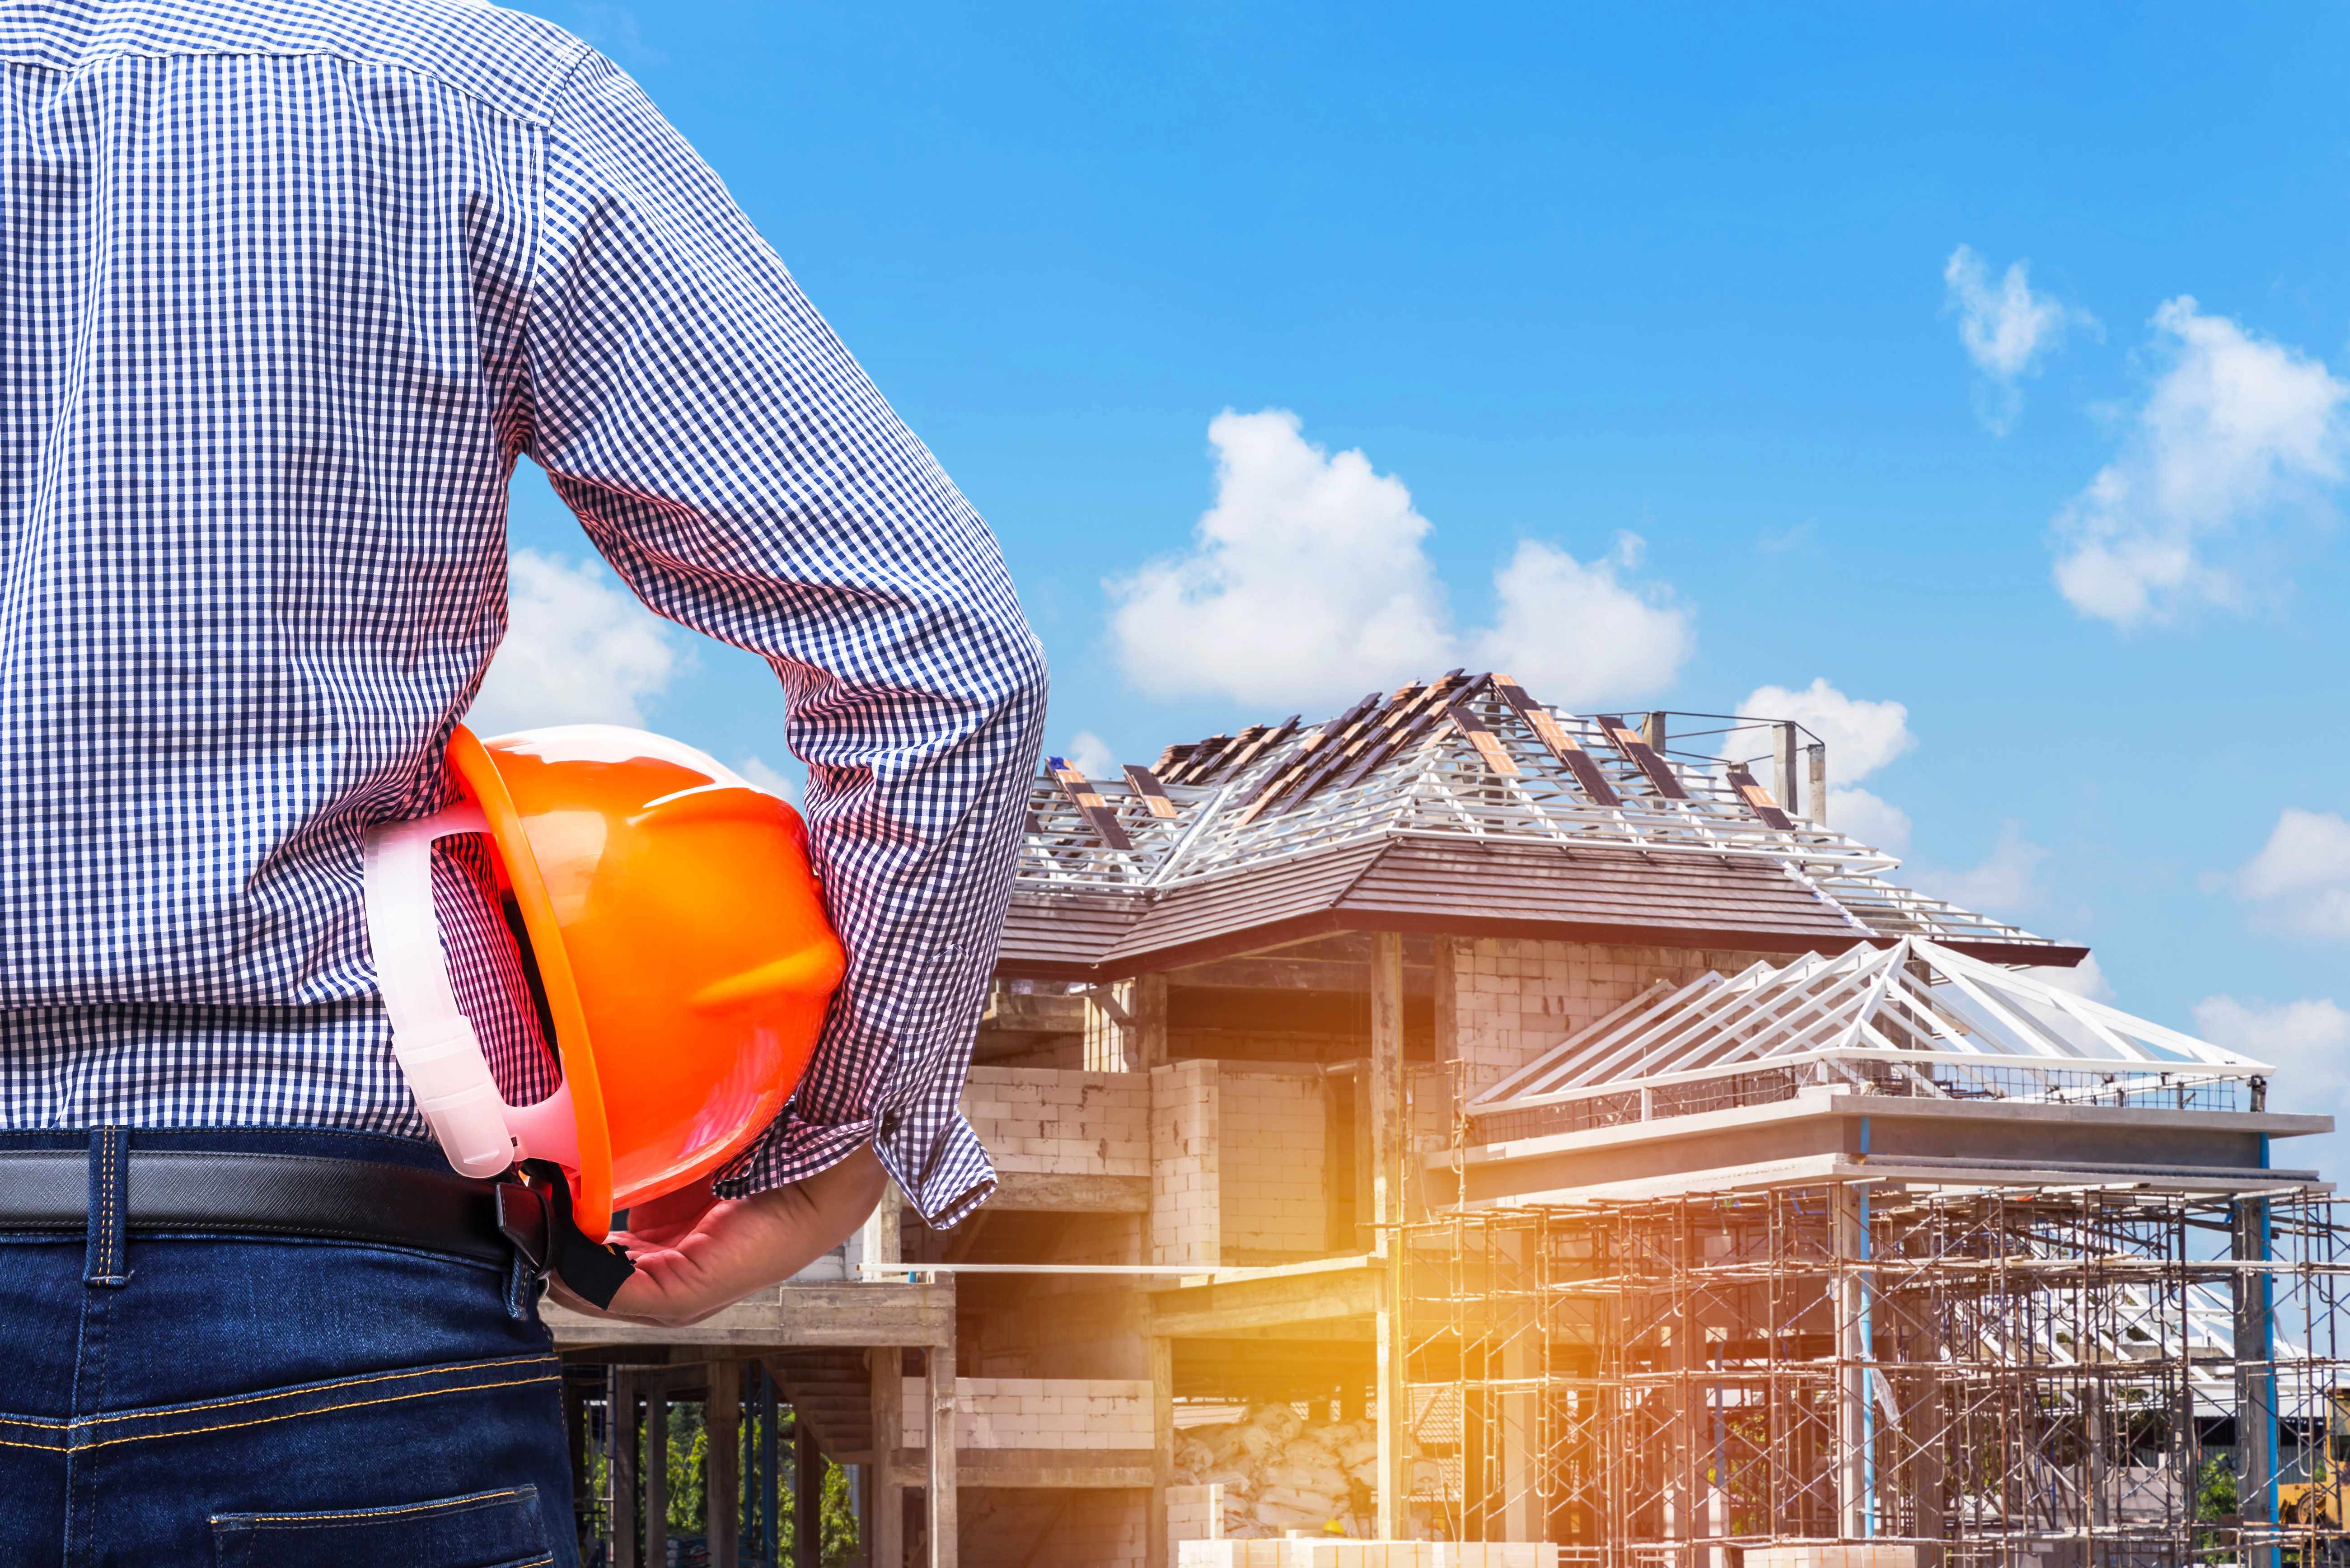 engineer-holding-safety-hat-at-new-home-construction